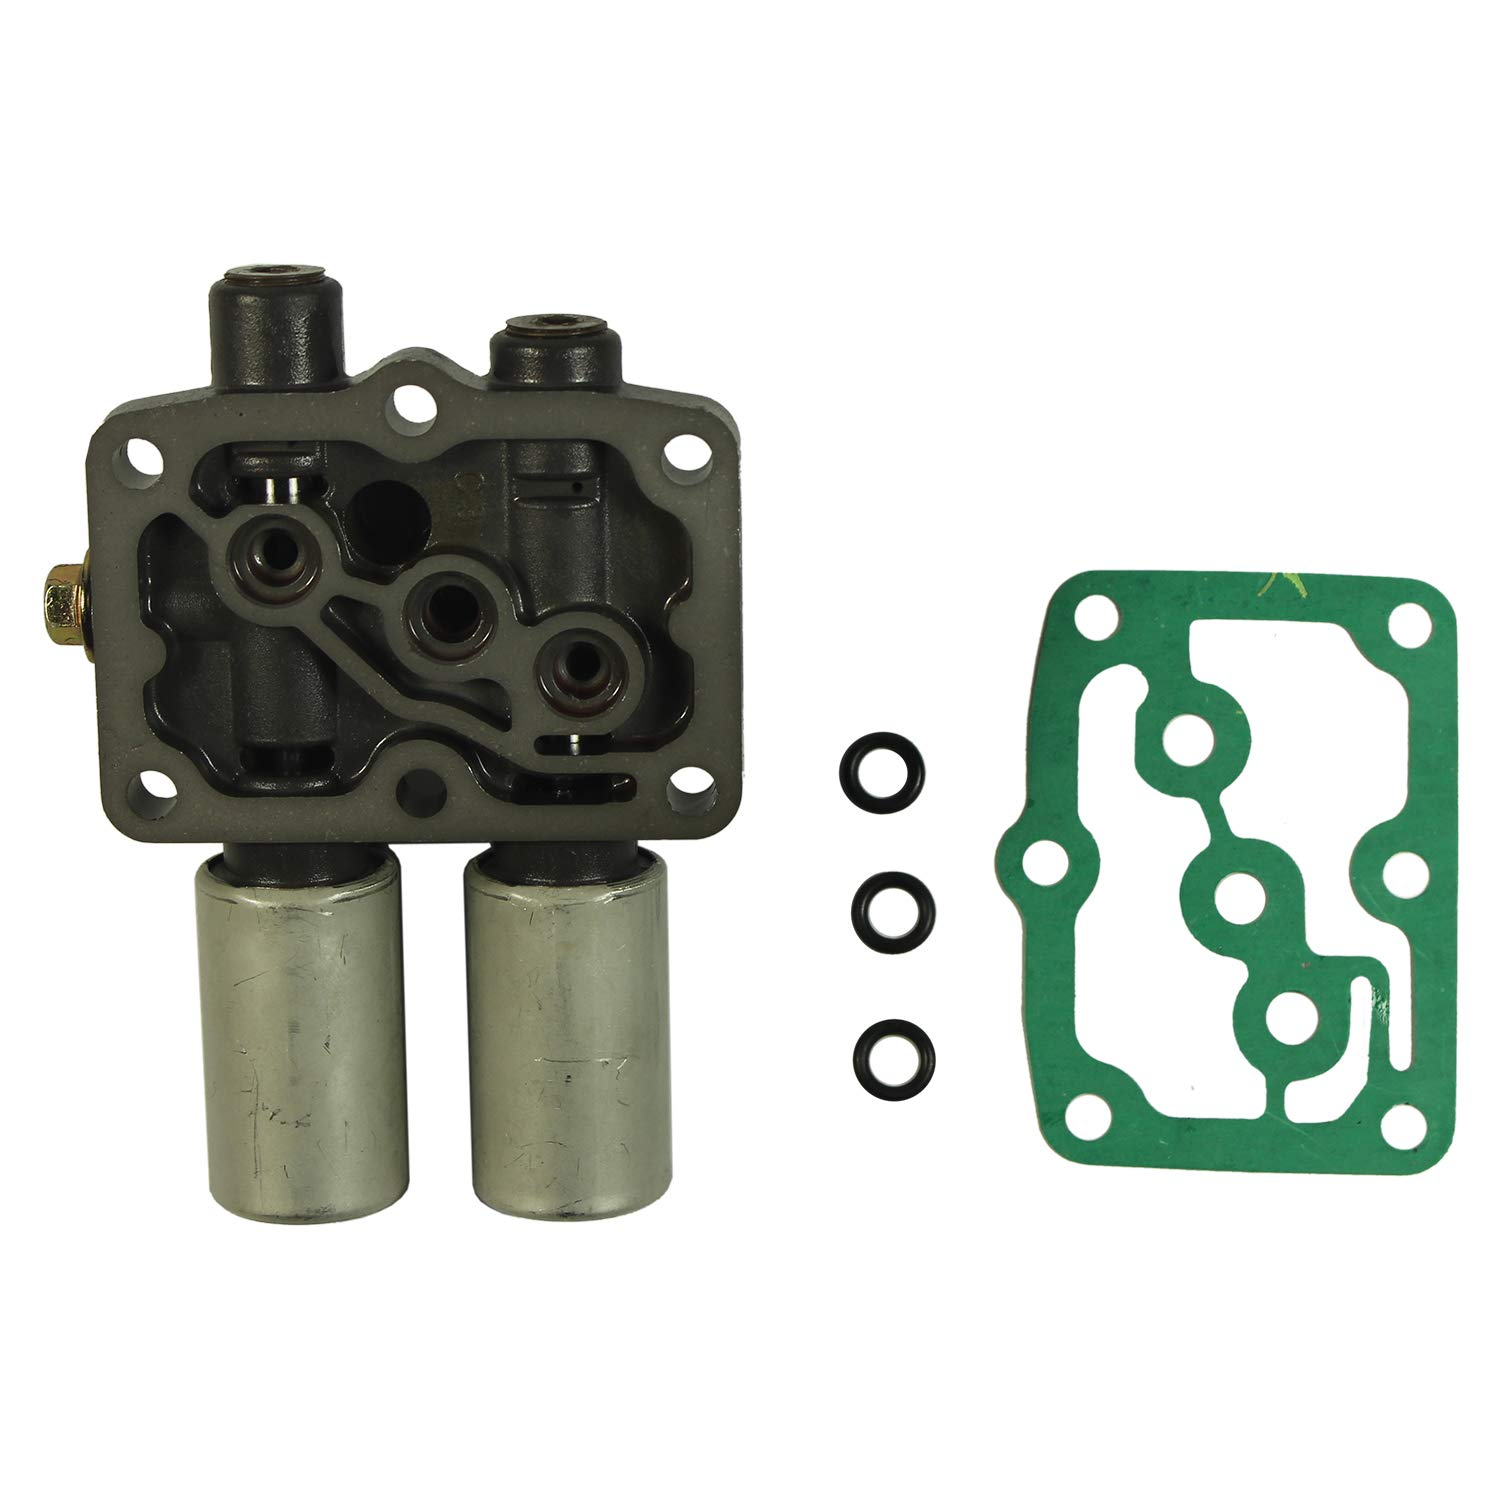 JDMSPEED New Transmission Dual Linear Shift Solenoid With Gasket For Honda Acura 1998 on